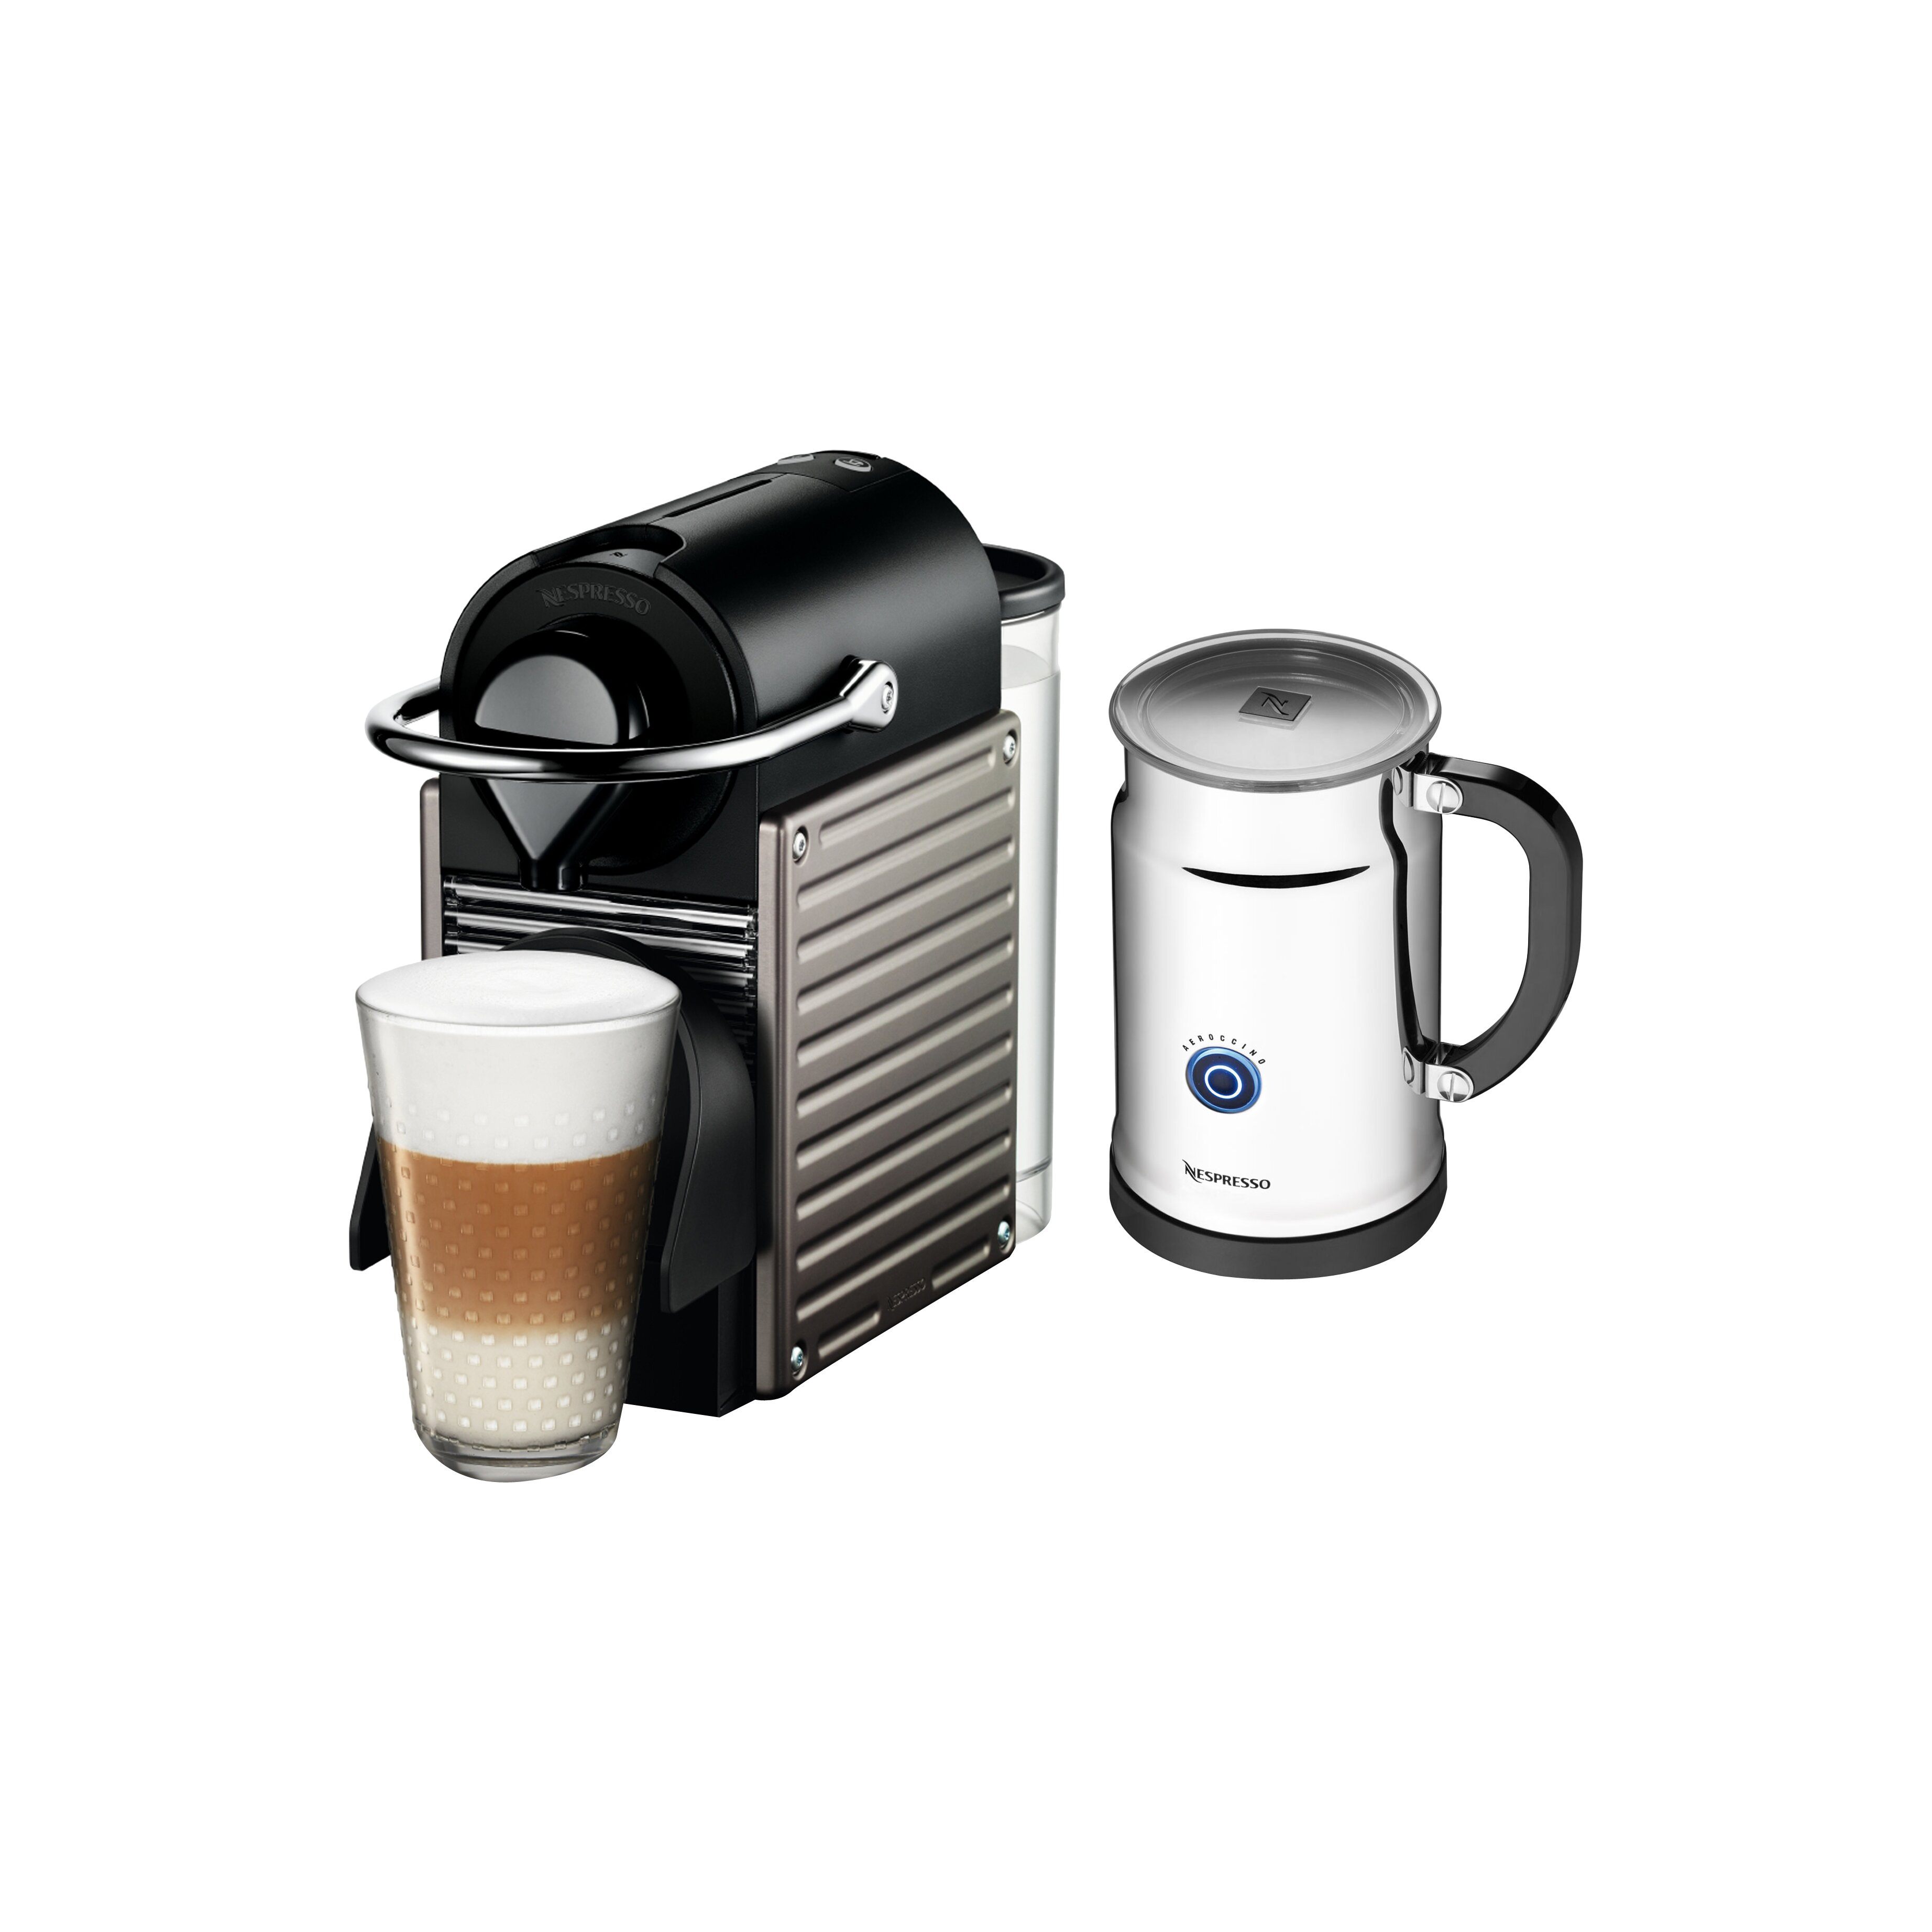 espresso and milk frother machine